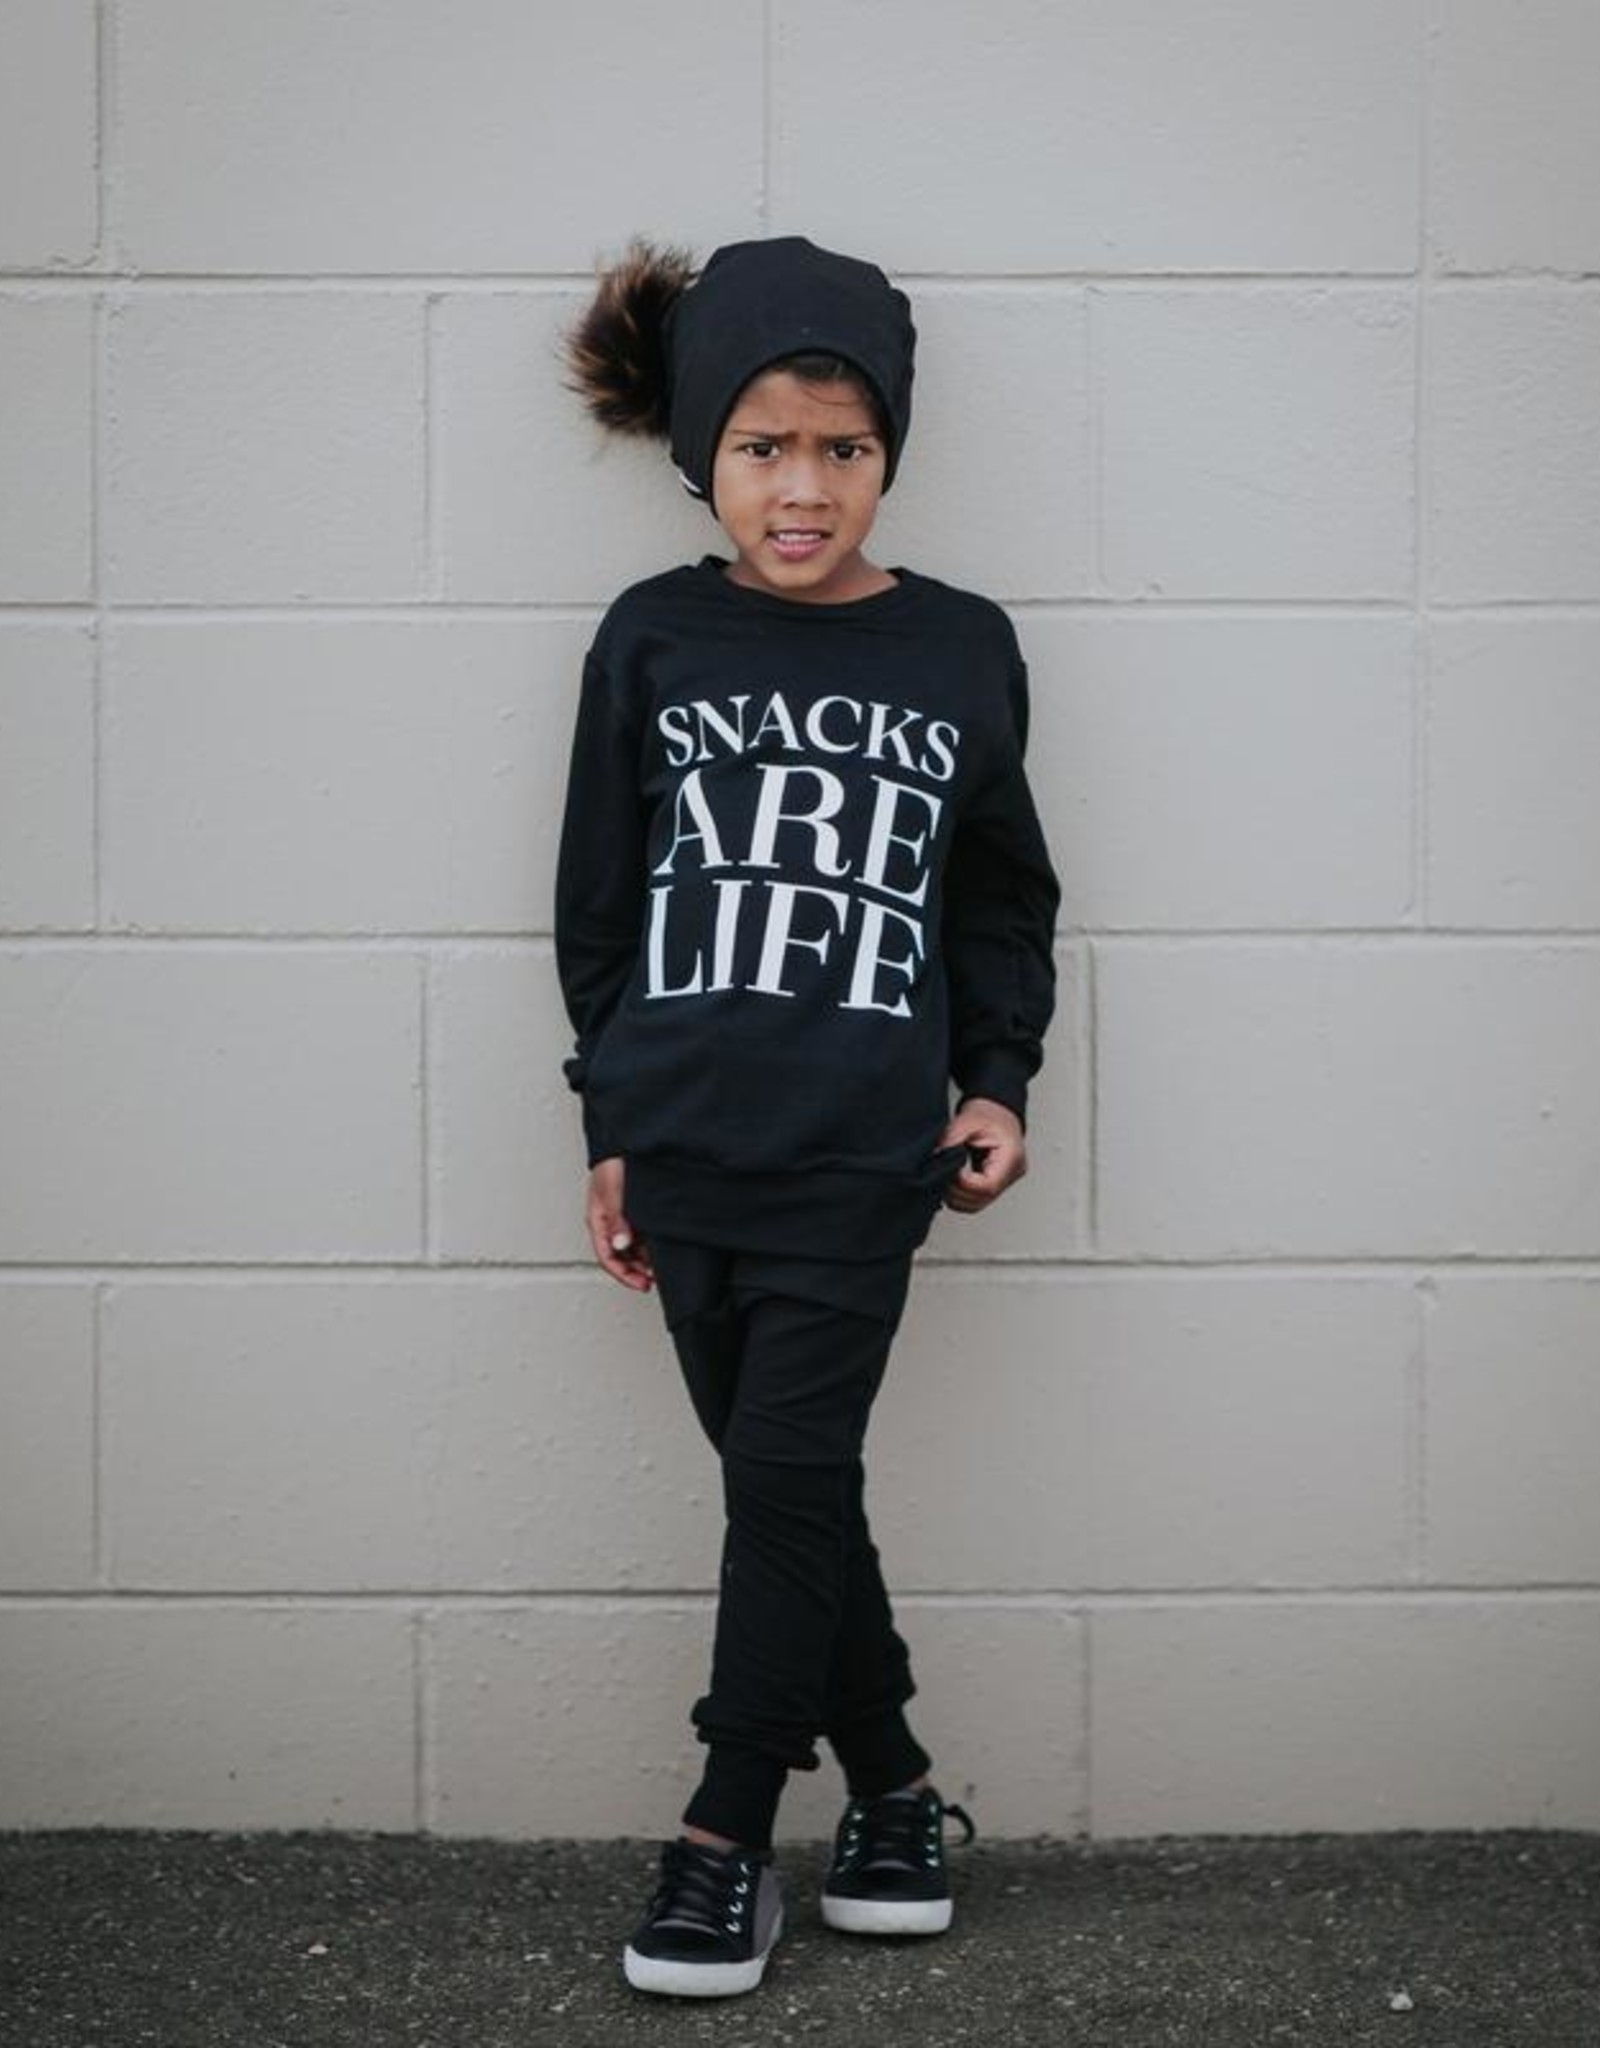 Posh & Cozy Youth Snacks are Life Crewneck - Black